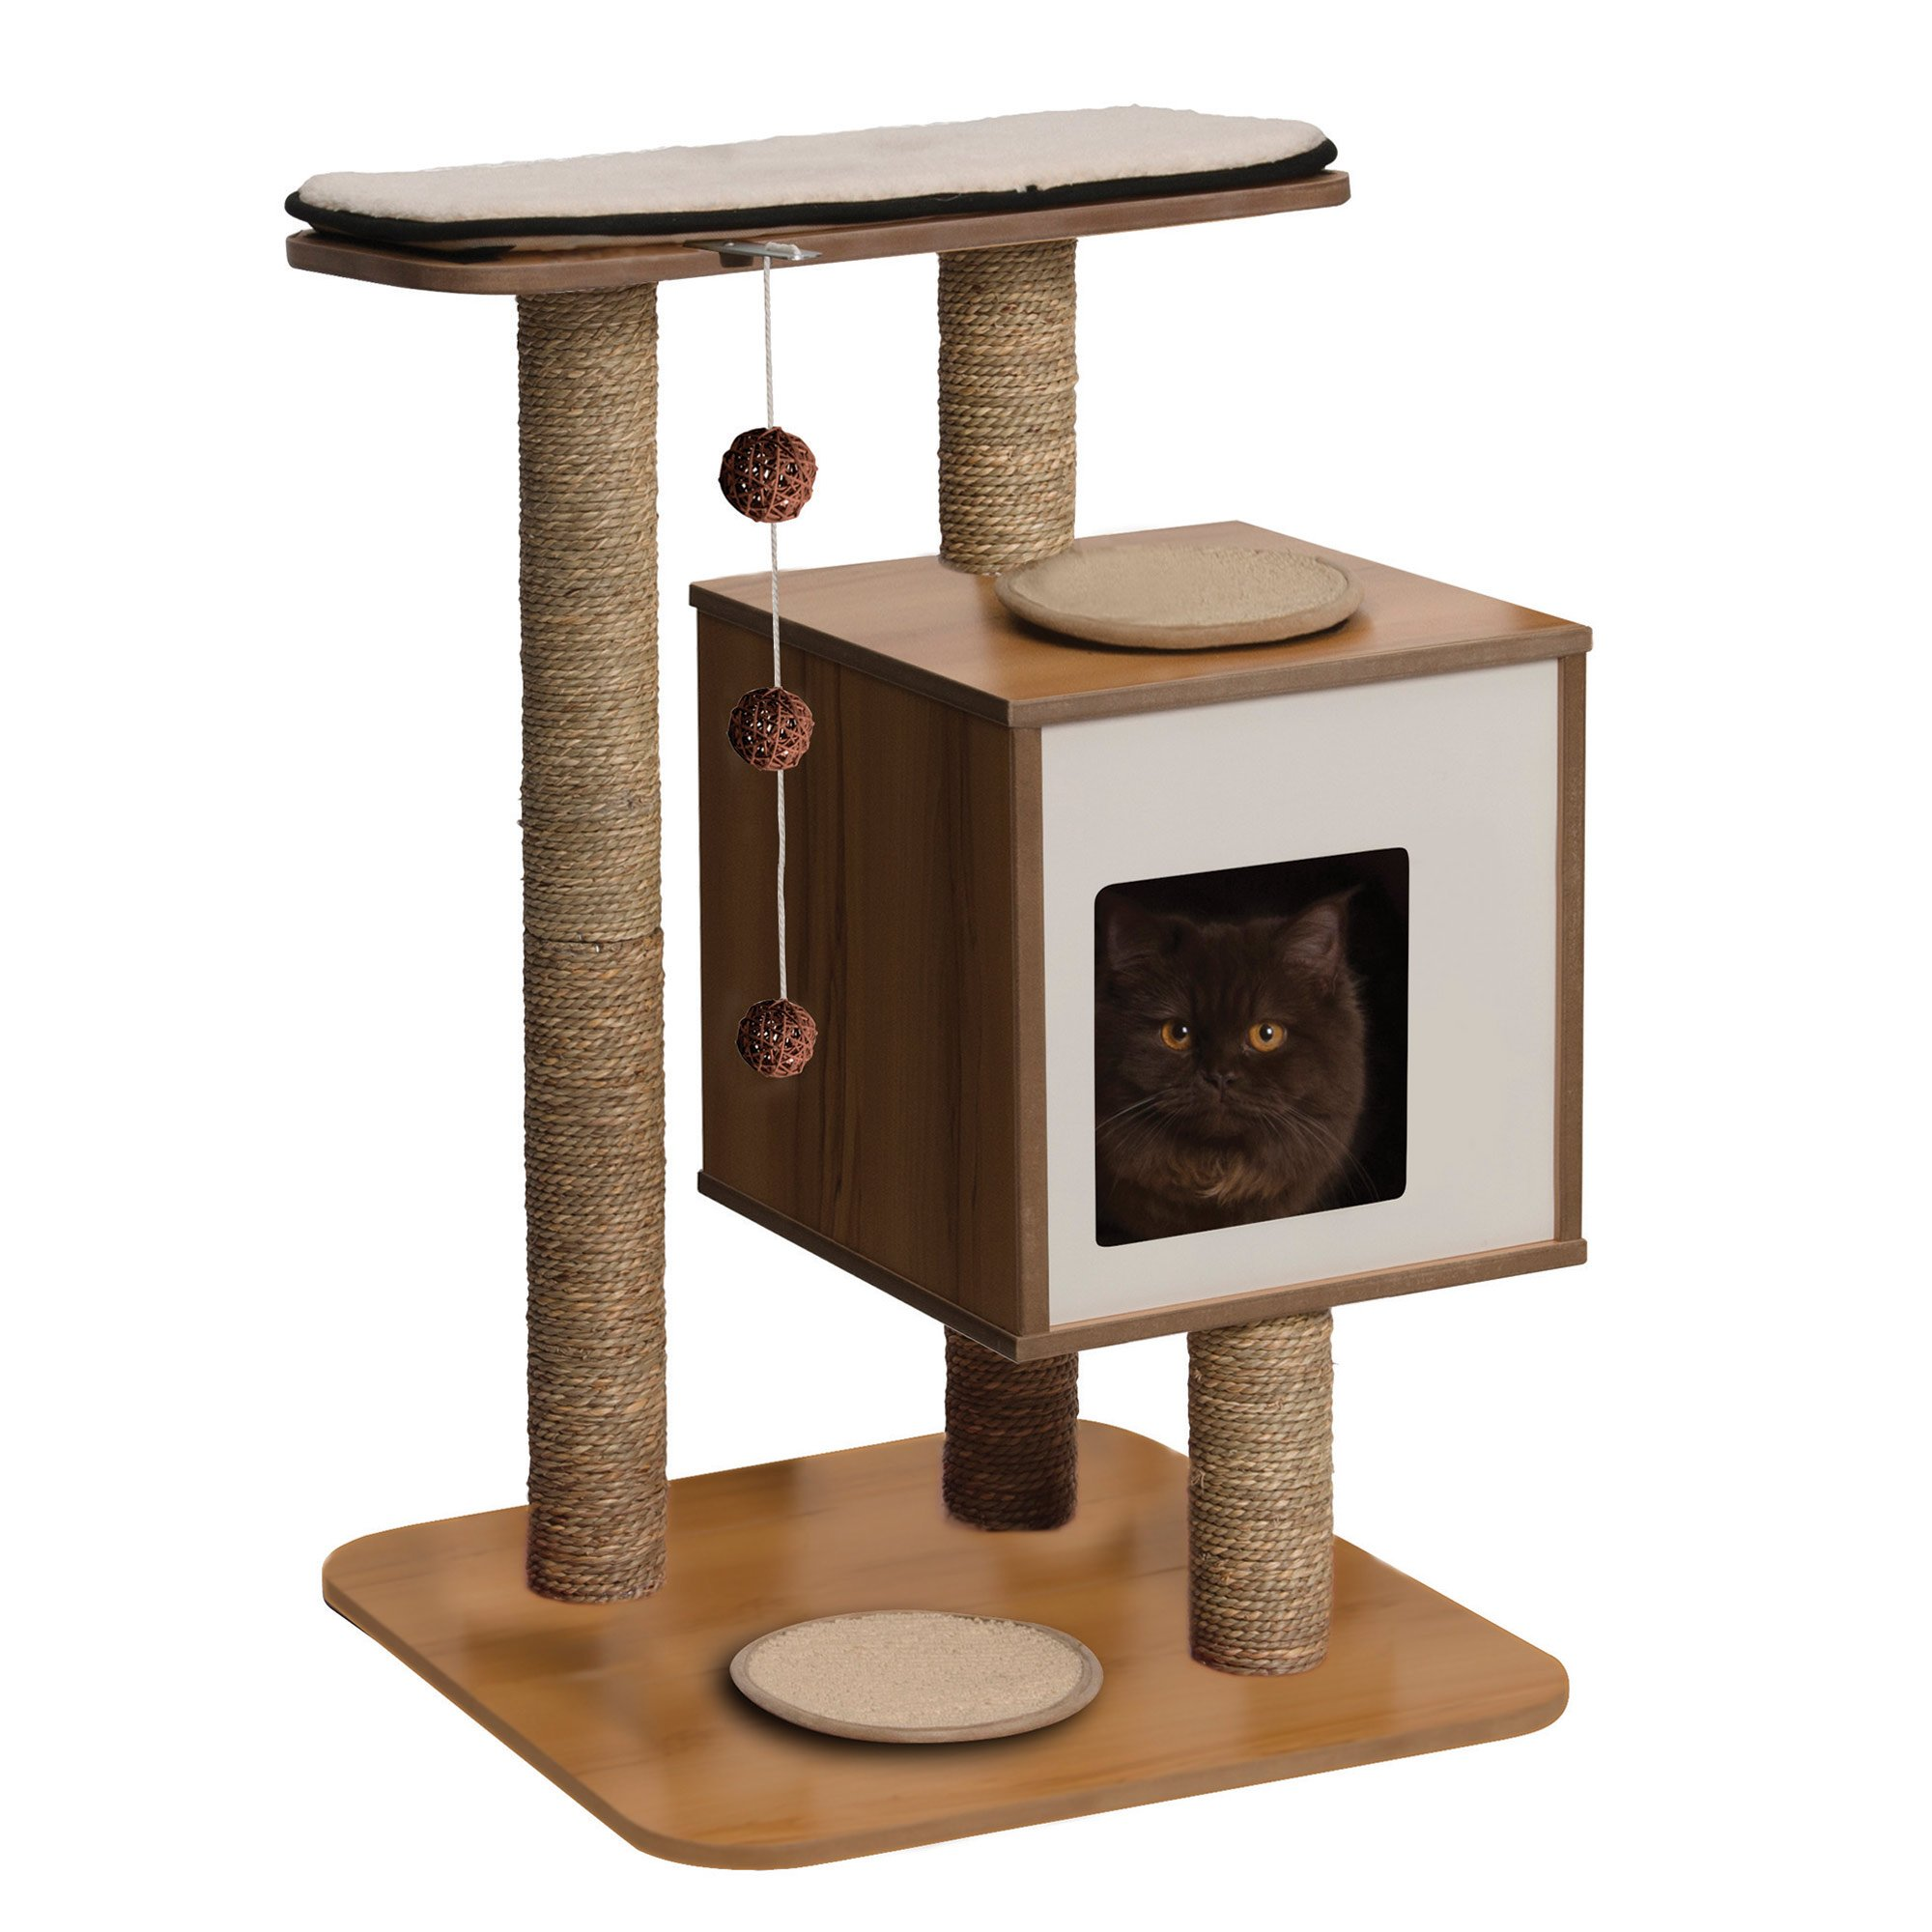 Vesper cat furniture v base petco - Sofas para gatos ...